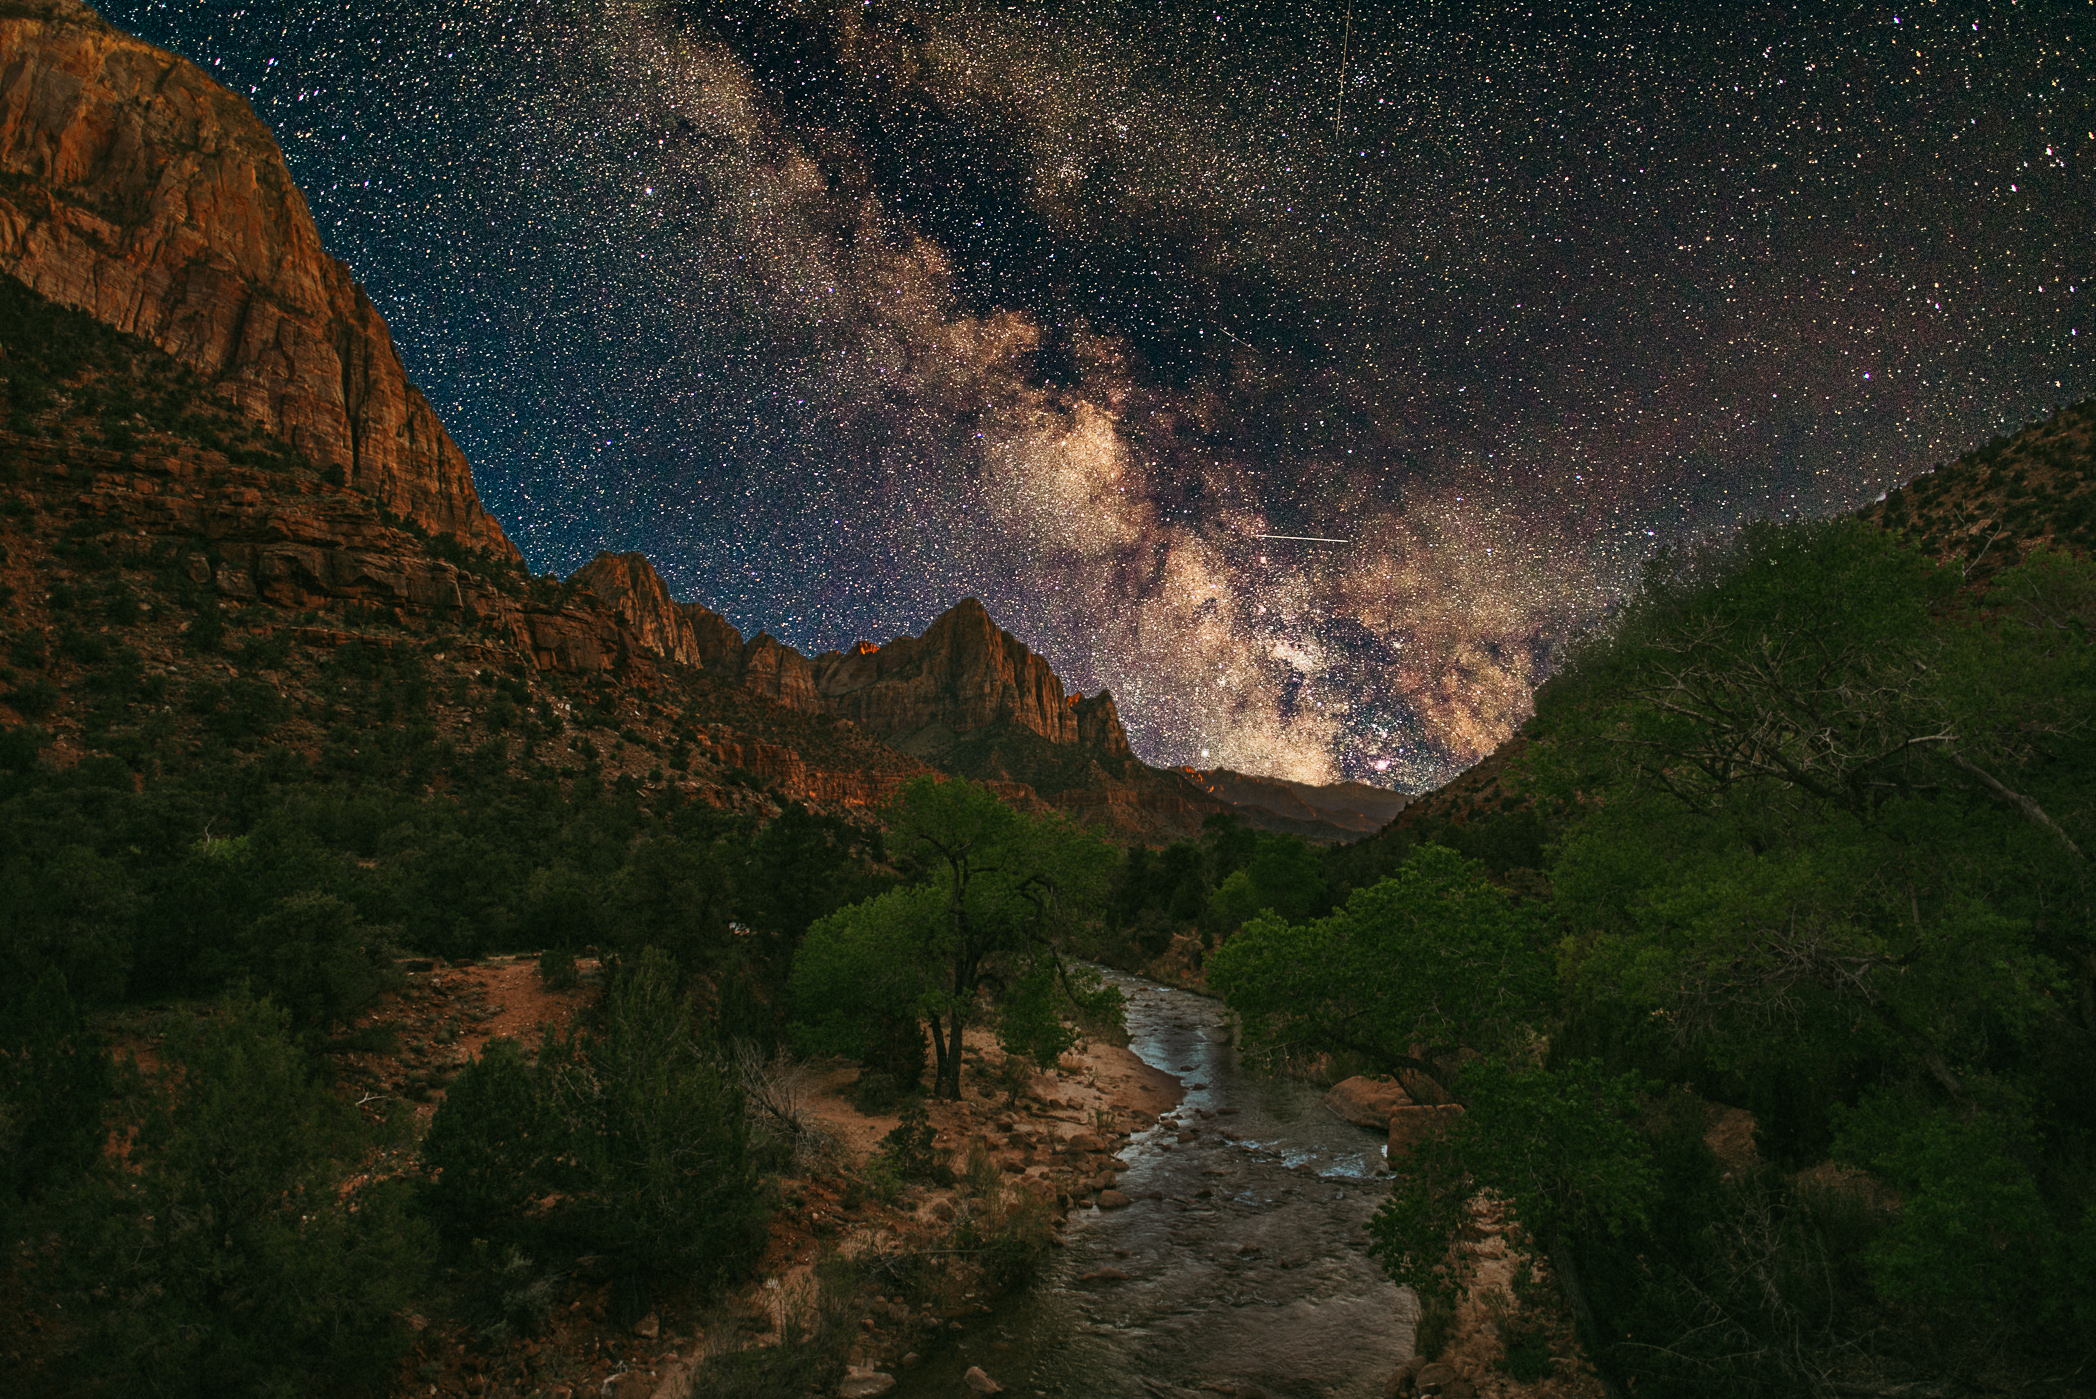 The Milky Way over Zion National - defeldus - bit.ly2rrlycx